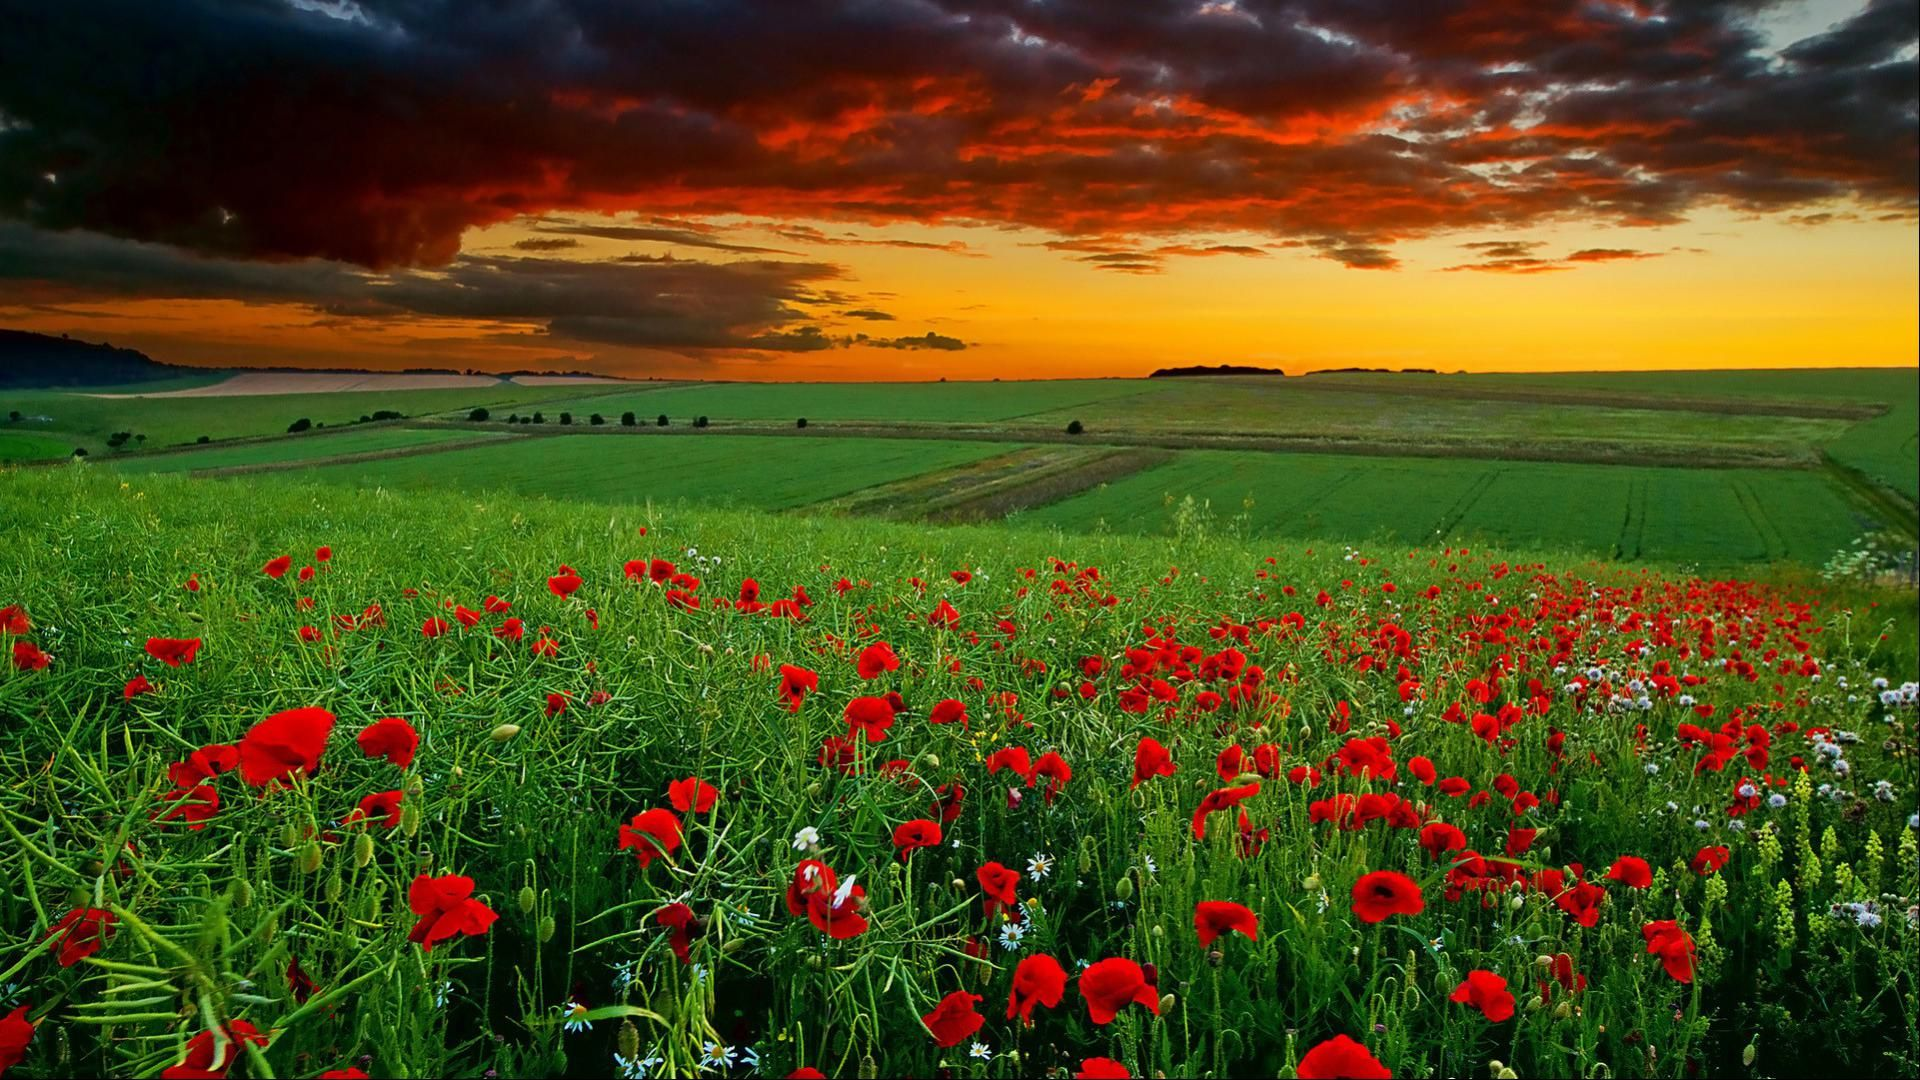 Full Hd Nature Wallpapers 1080p Desktop In Green Landscape With